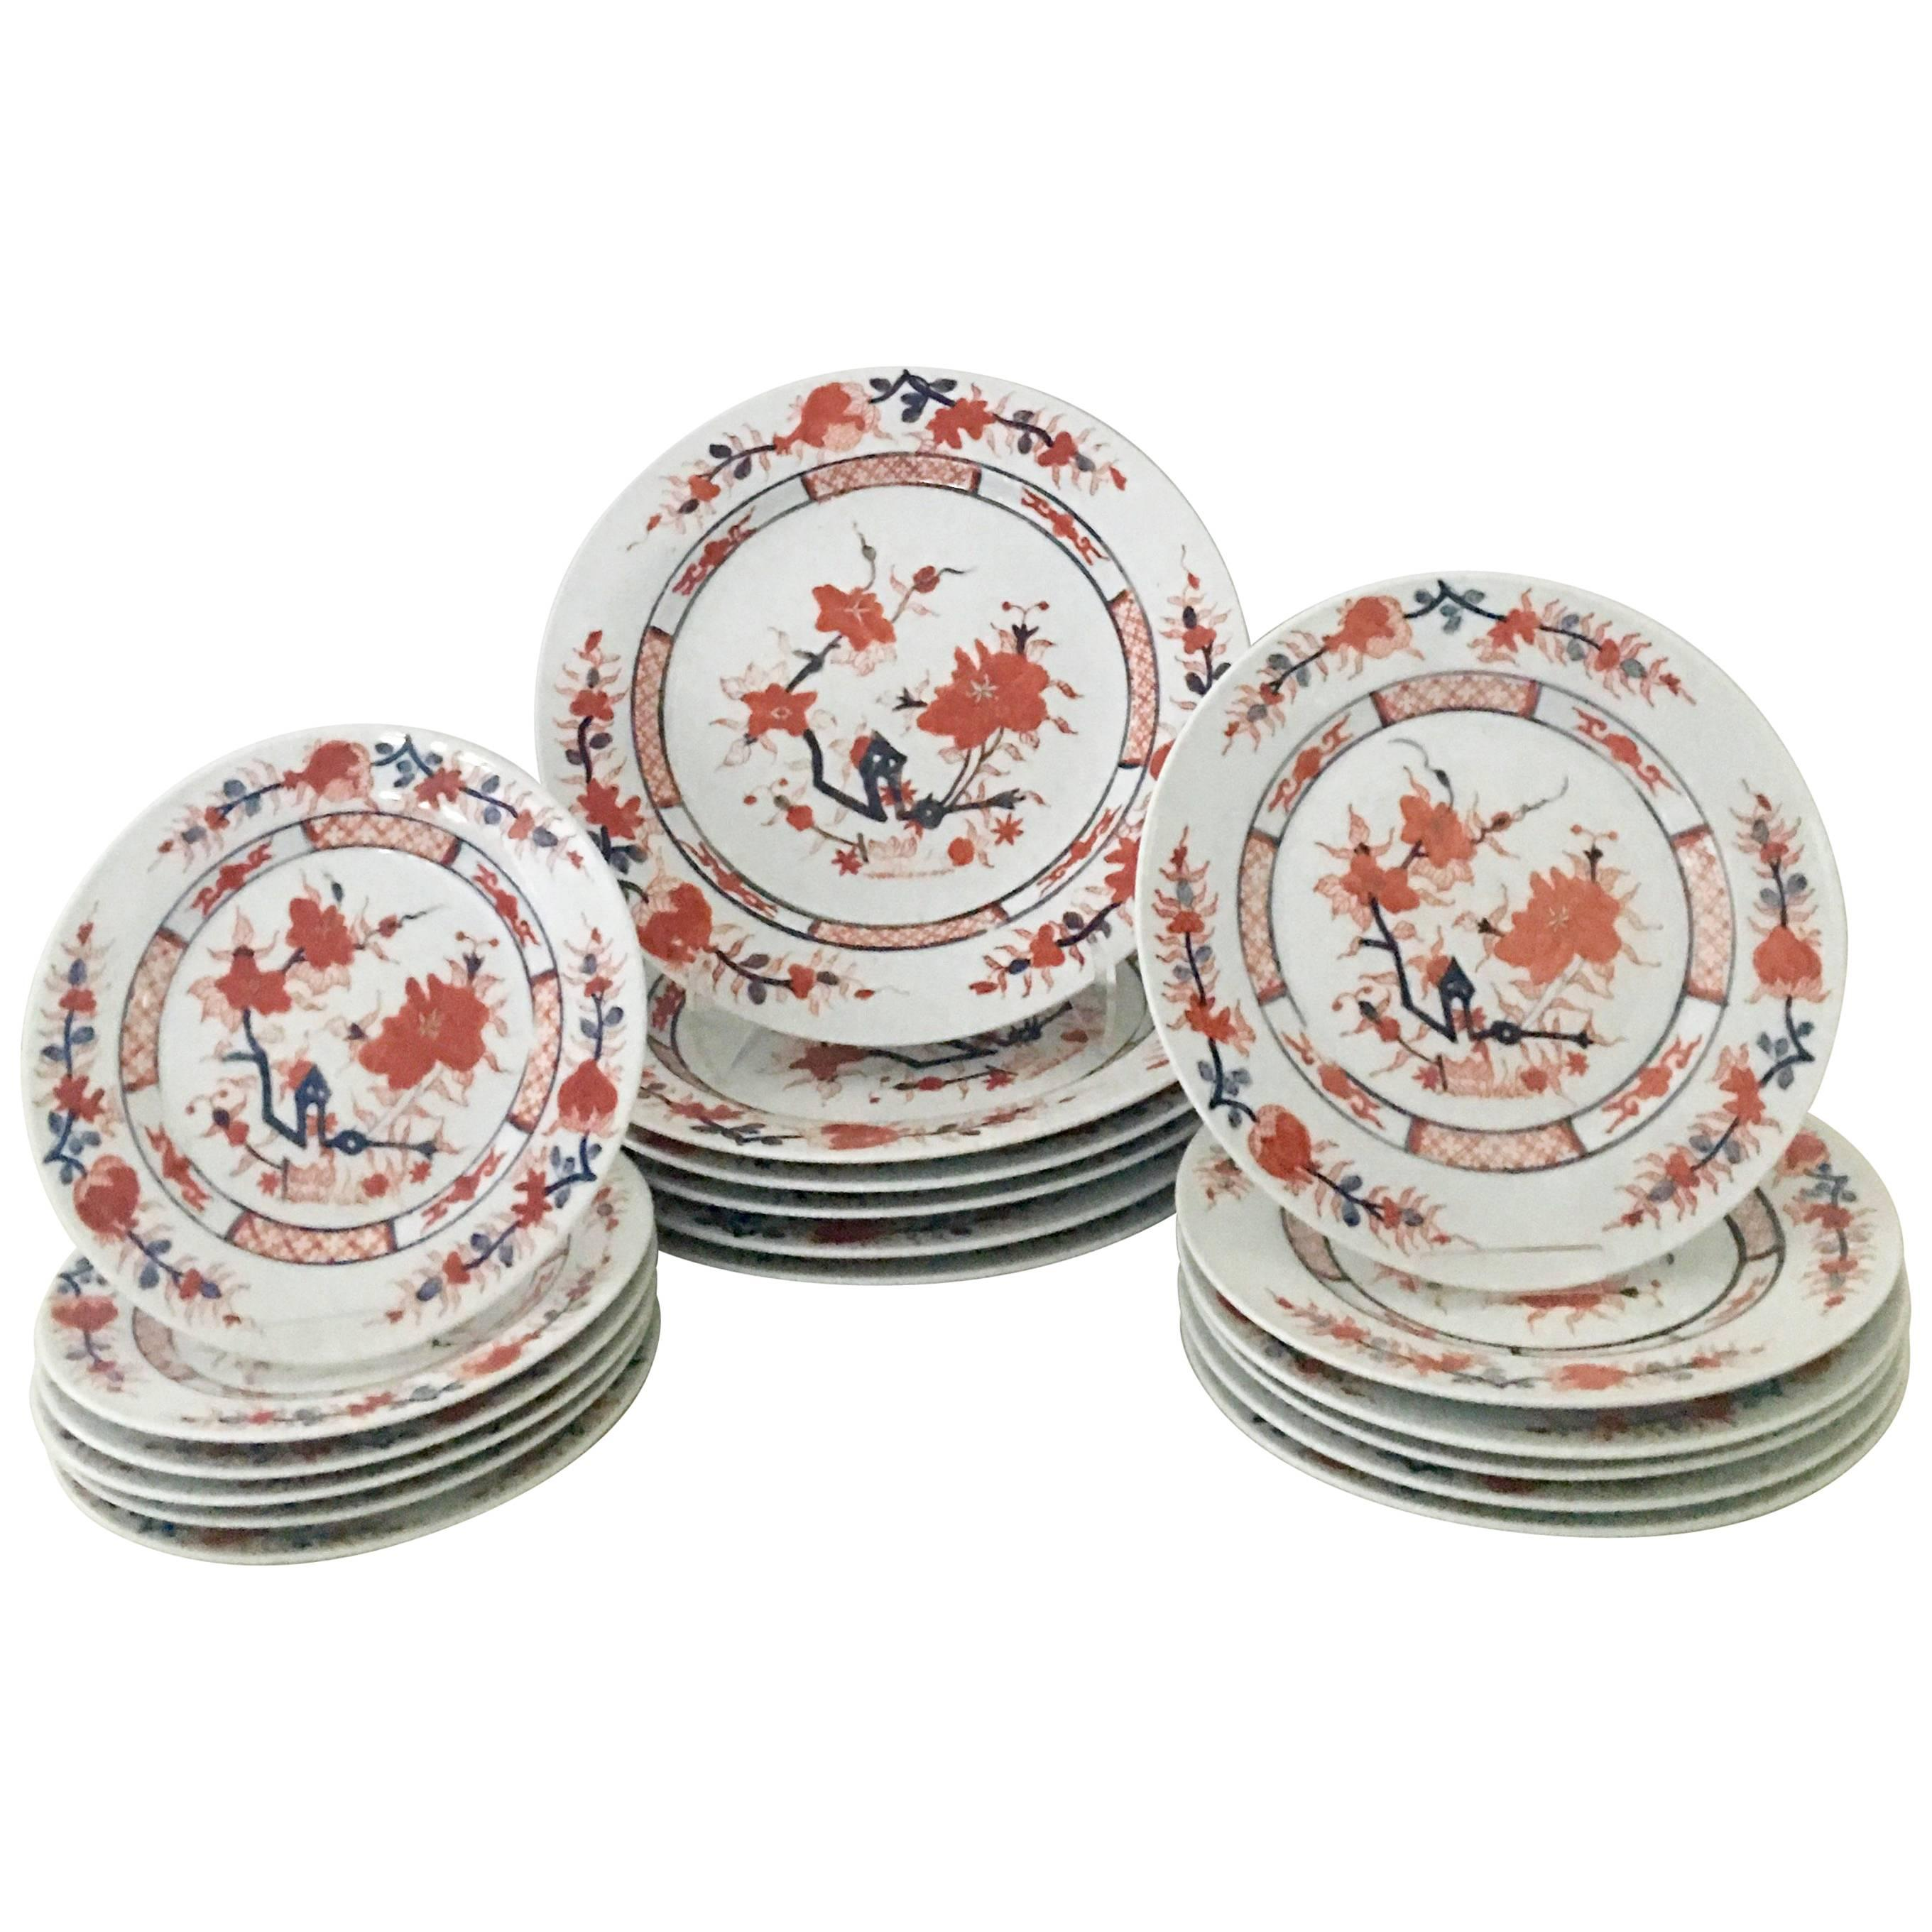 20th Century Japanese Porcelain Imari Dinnerware Set of 18 Pieces For Sale  sc 1 st  1stDibs & 20th Century Japanese Porcelain Imari Dinnerware Set of 18 Pieces at ...